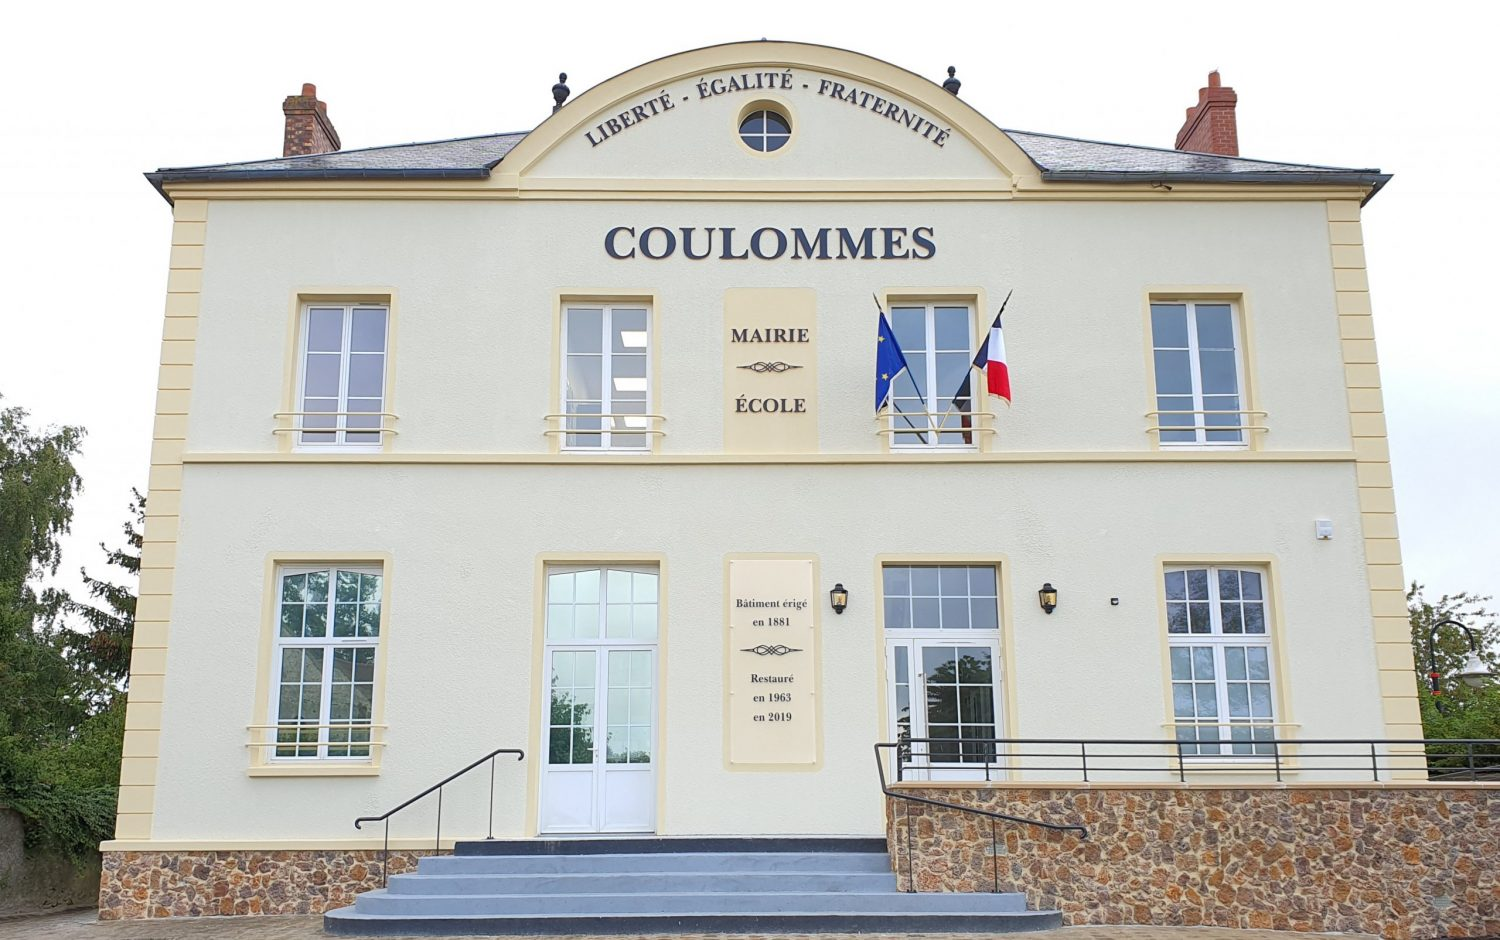 Coulommes